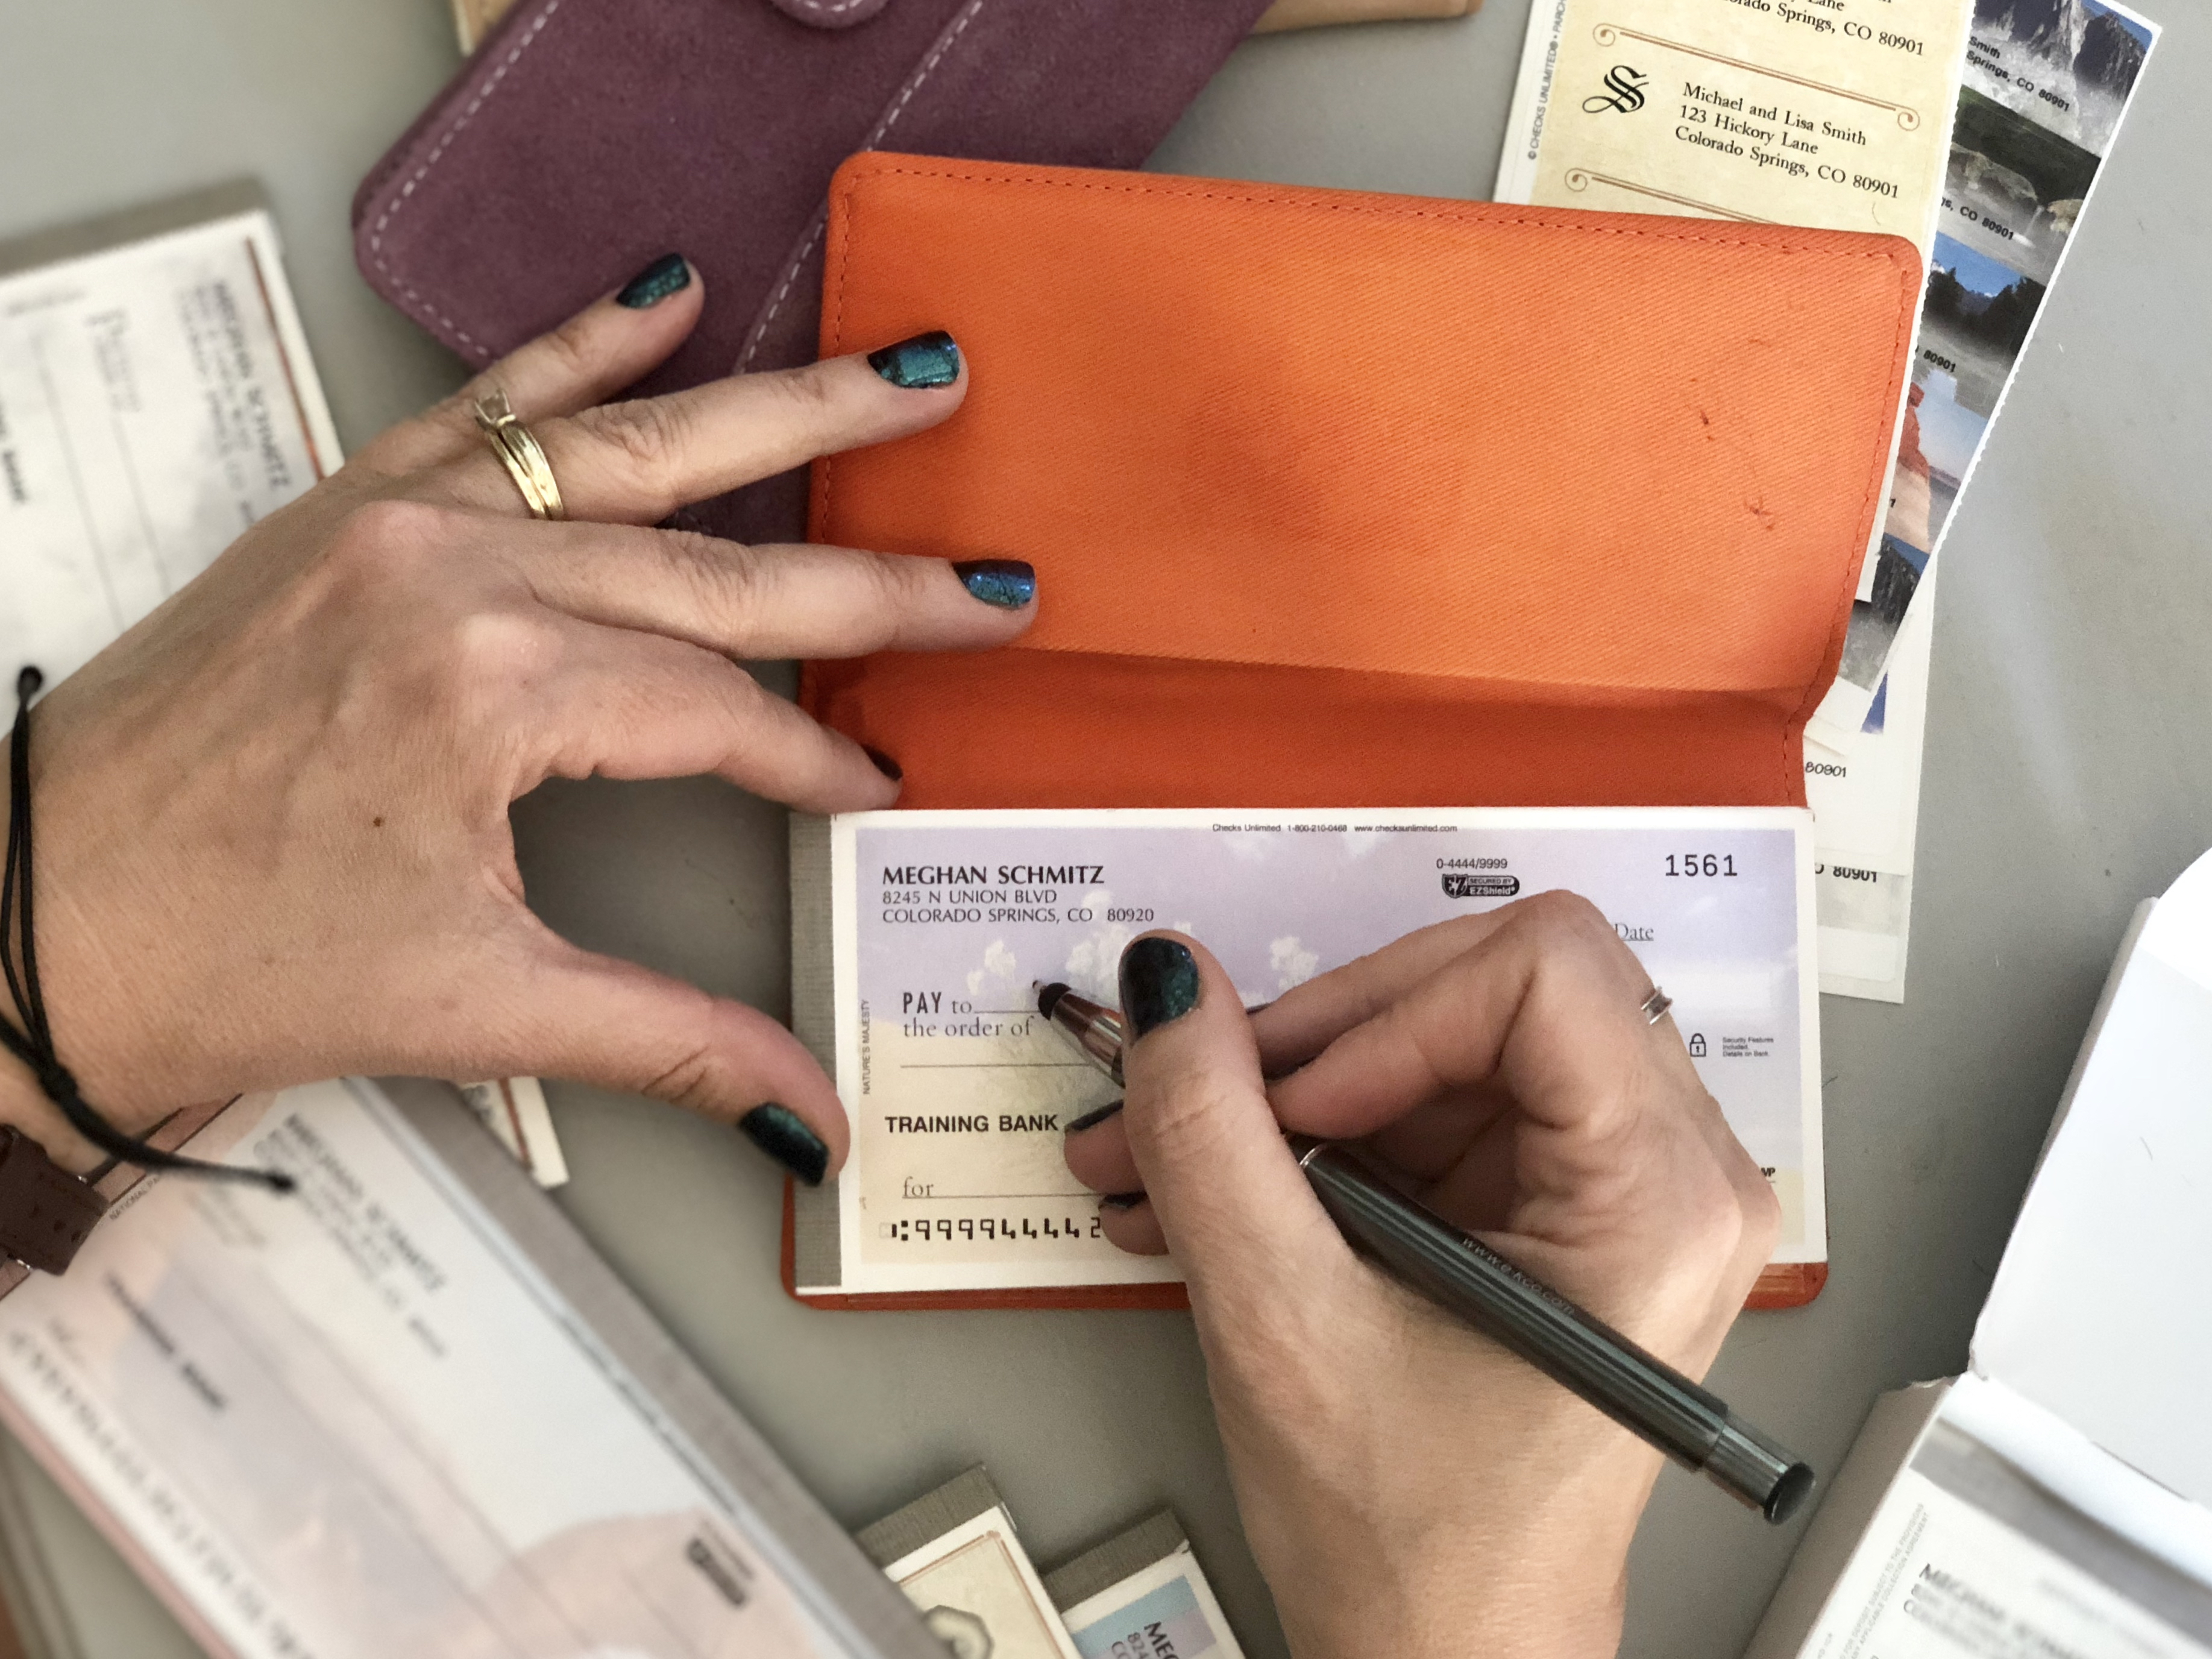 Get personalized checks from Checks Unlimited shipped for less than $5 per box with this deal!